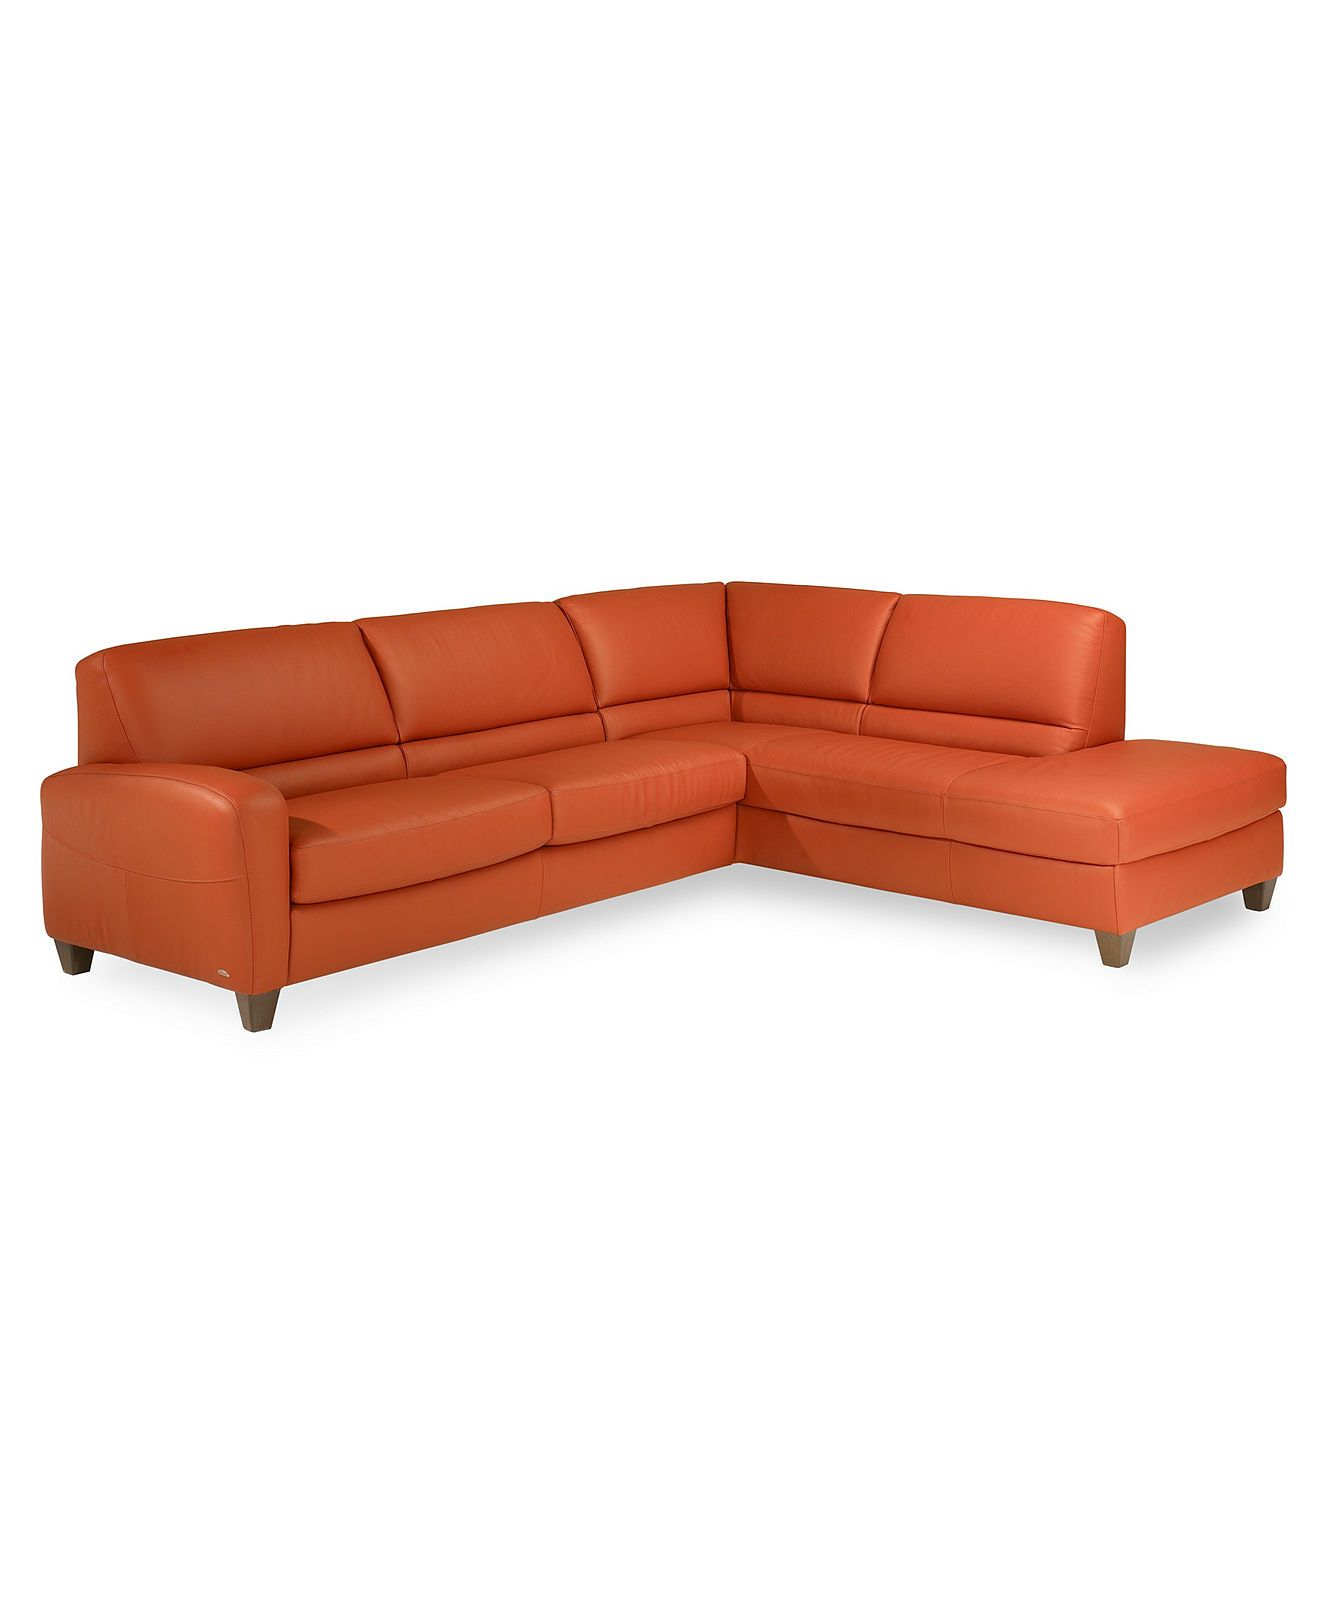 Macy S Furniture Sofa Beds Downlow Set Italsofa 144 Lr Pinterest Leather Sectional Sofas